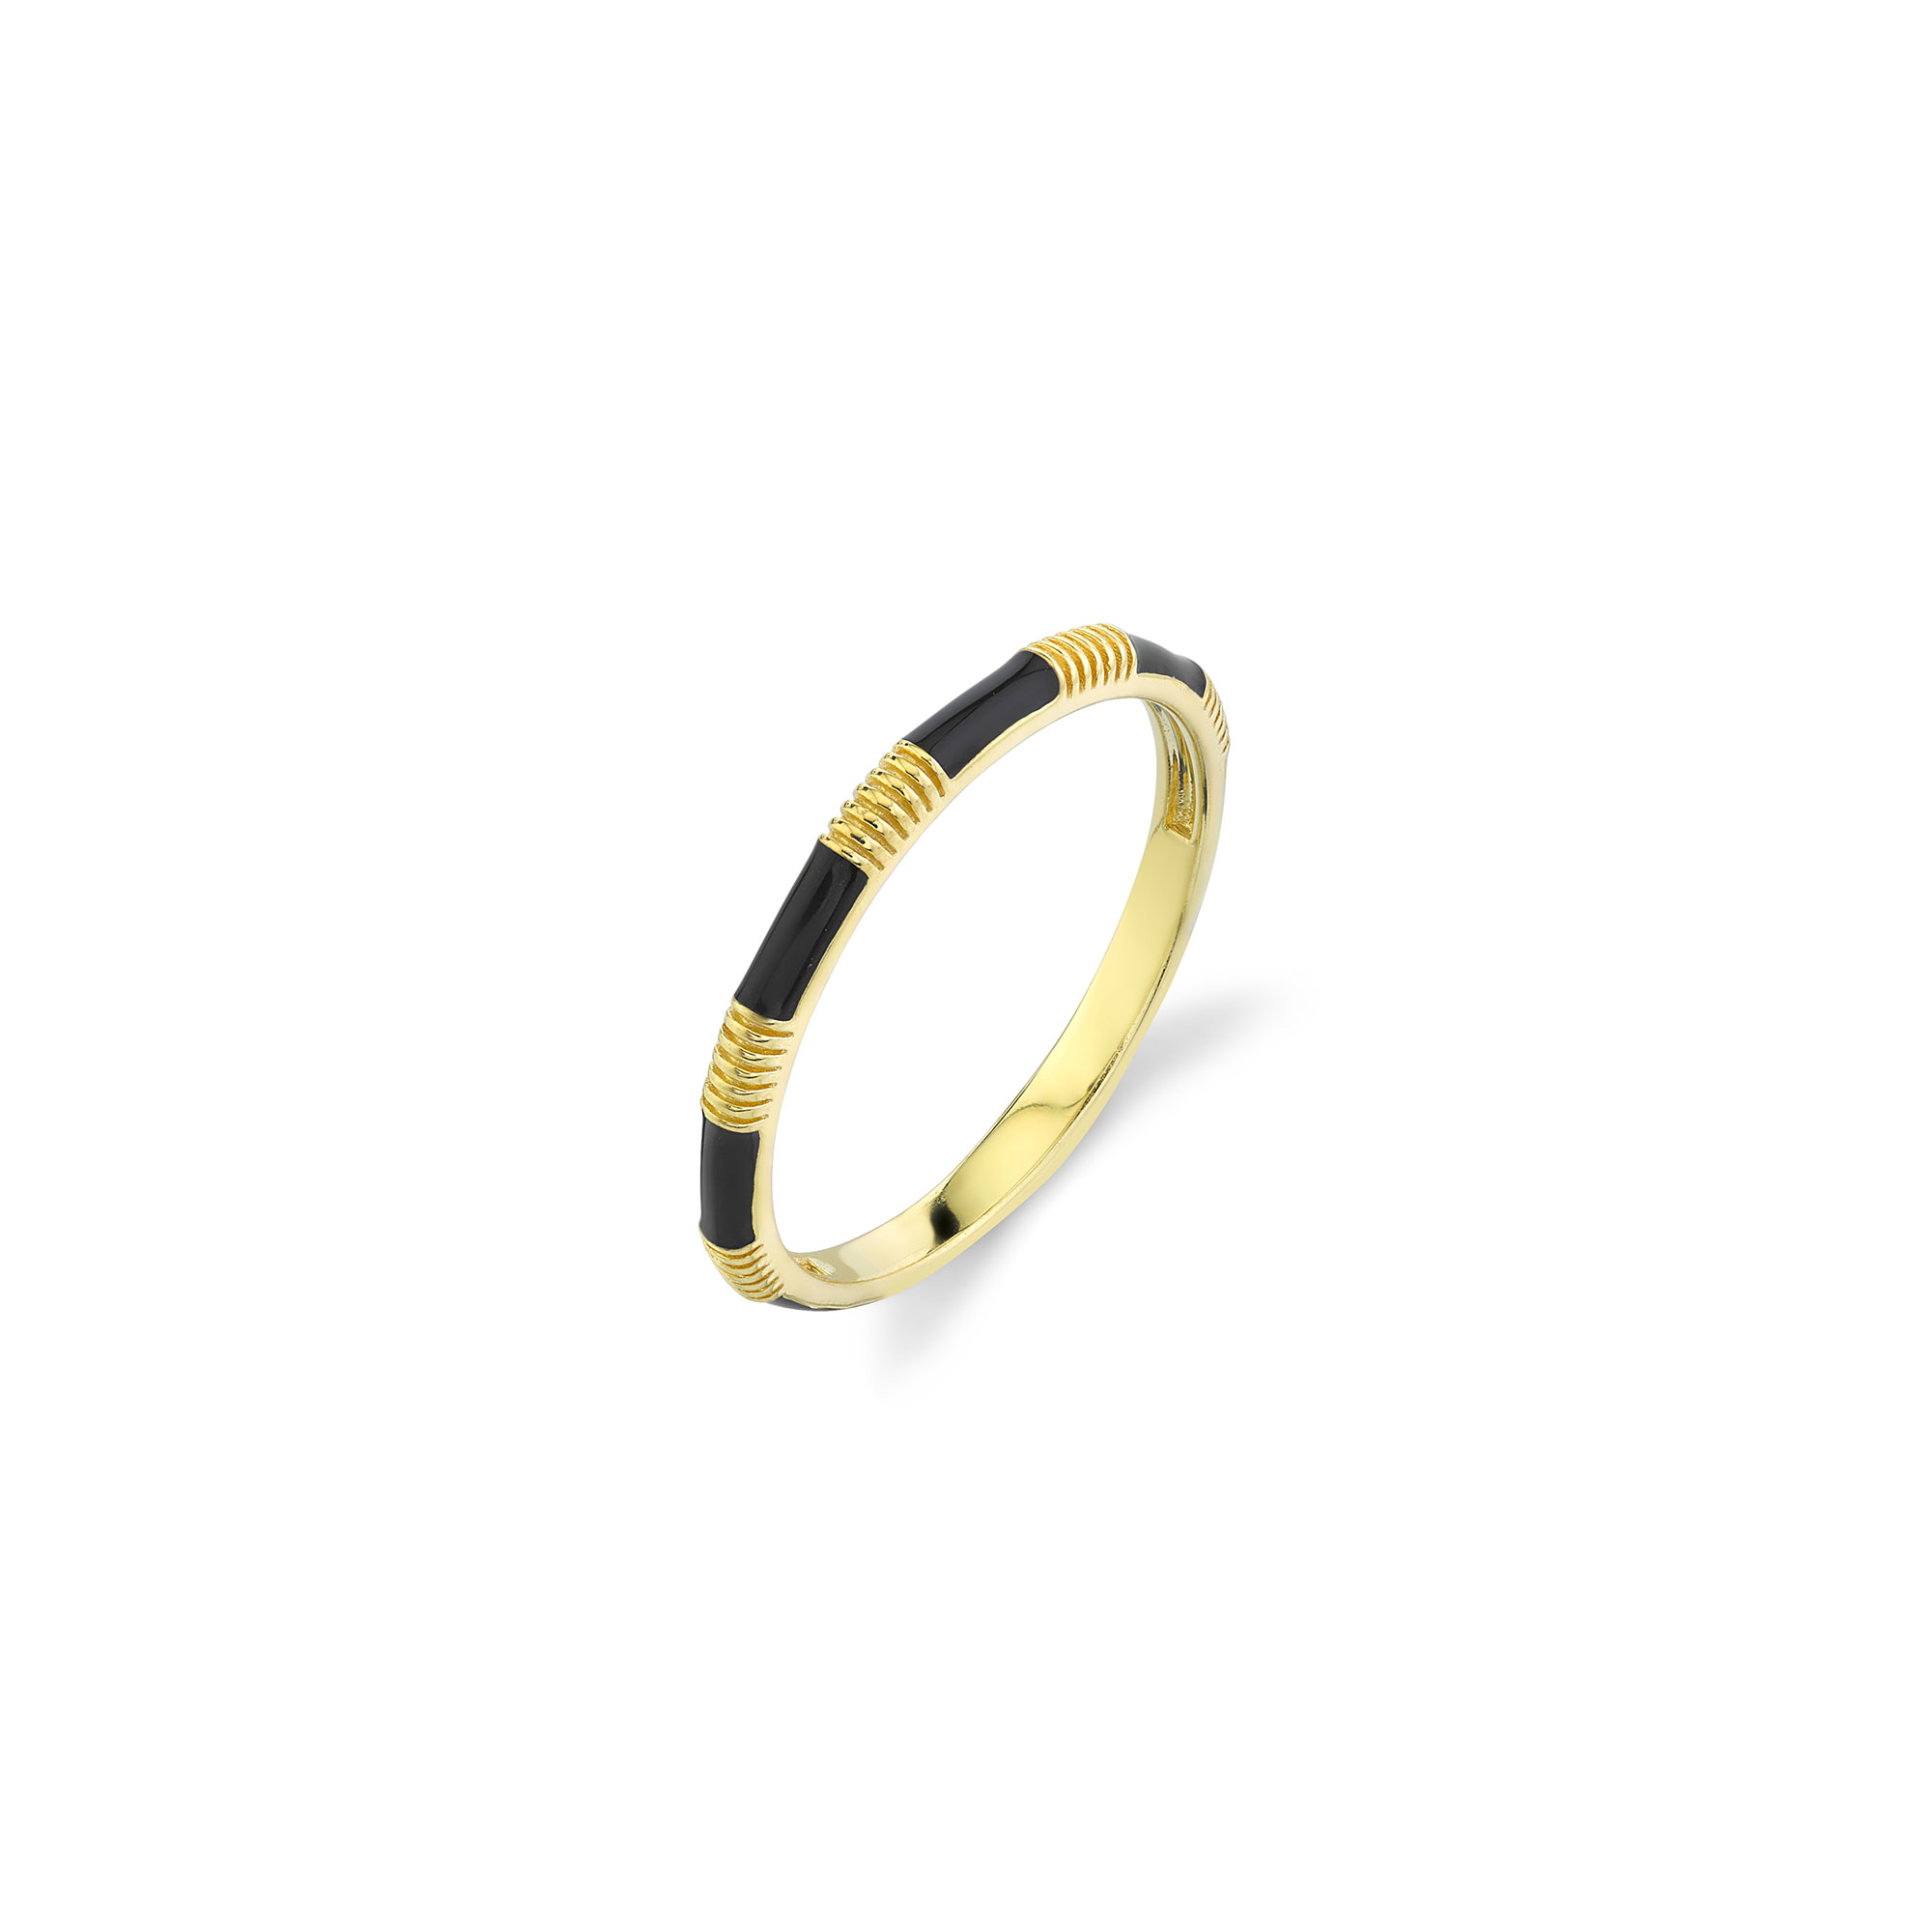 Sloane Street 18K Yellow Gold    Gold Ring without stones R013G-BKE-Y-7